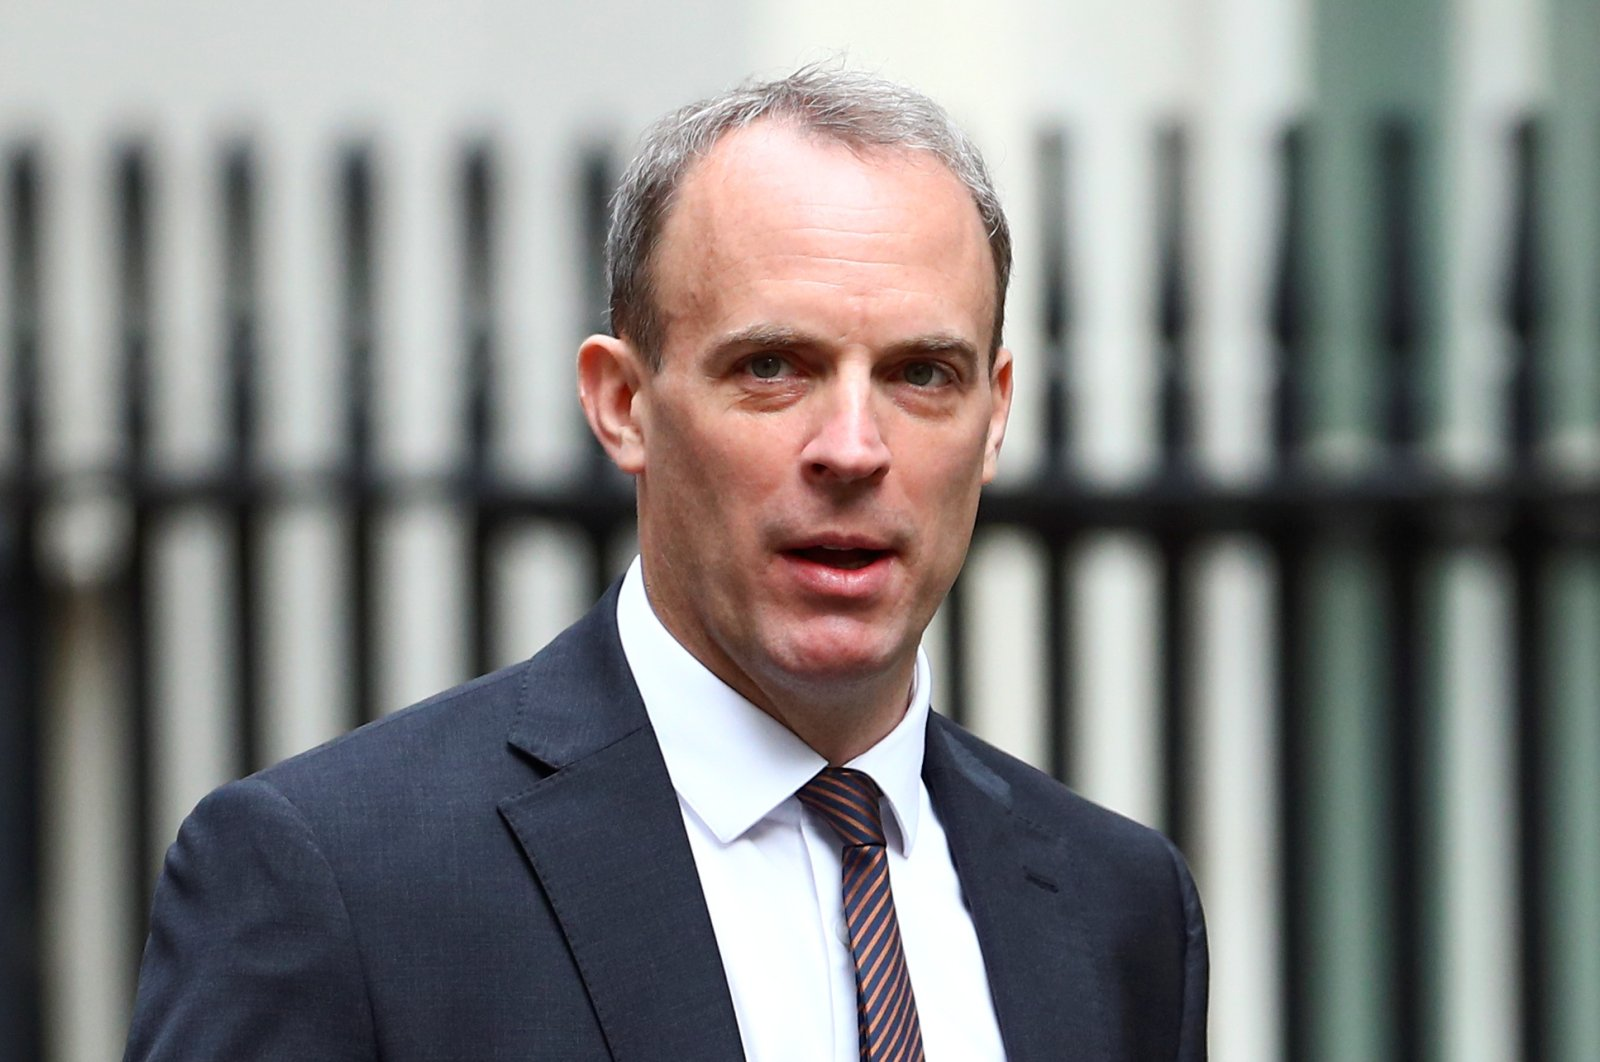 Britain's Foreign Secretary Dominic Raab arrives at Downing Street ahead of a cabinet meeting in London, Britain, July 14, 2020. (Reuters Photo)